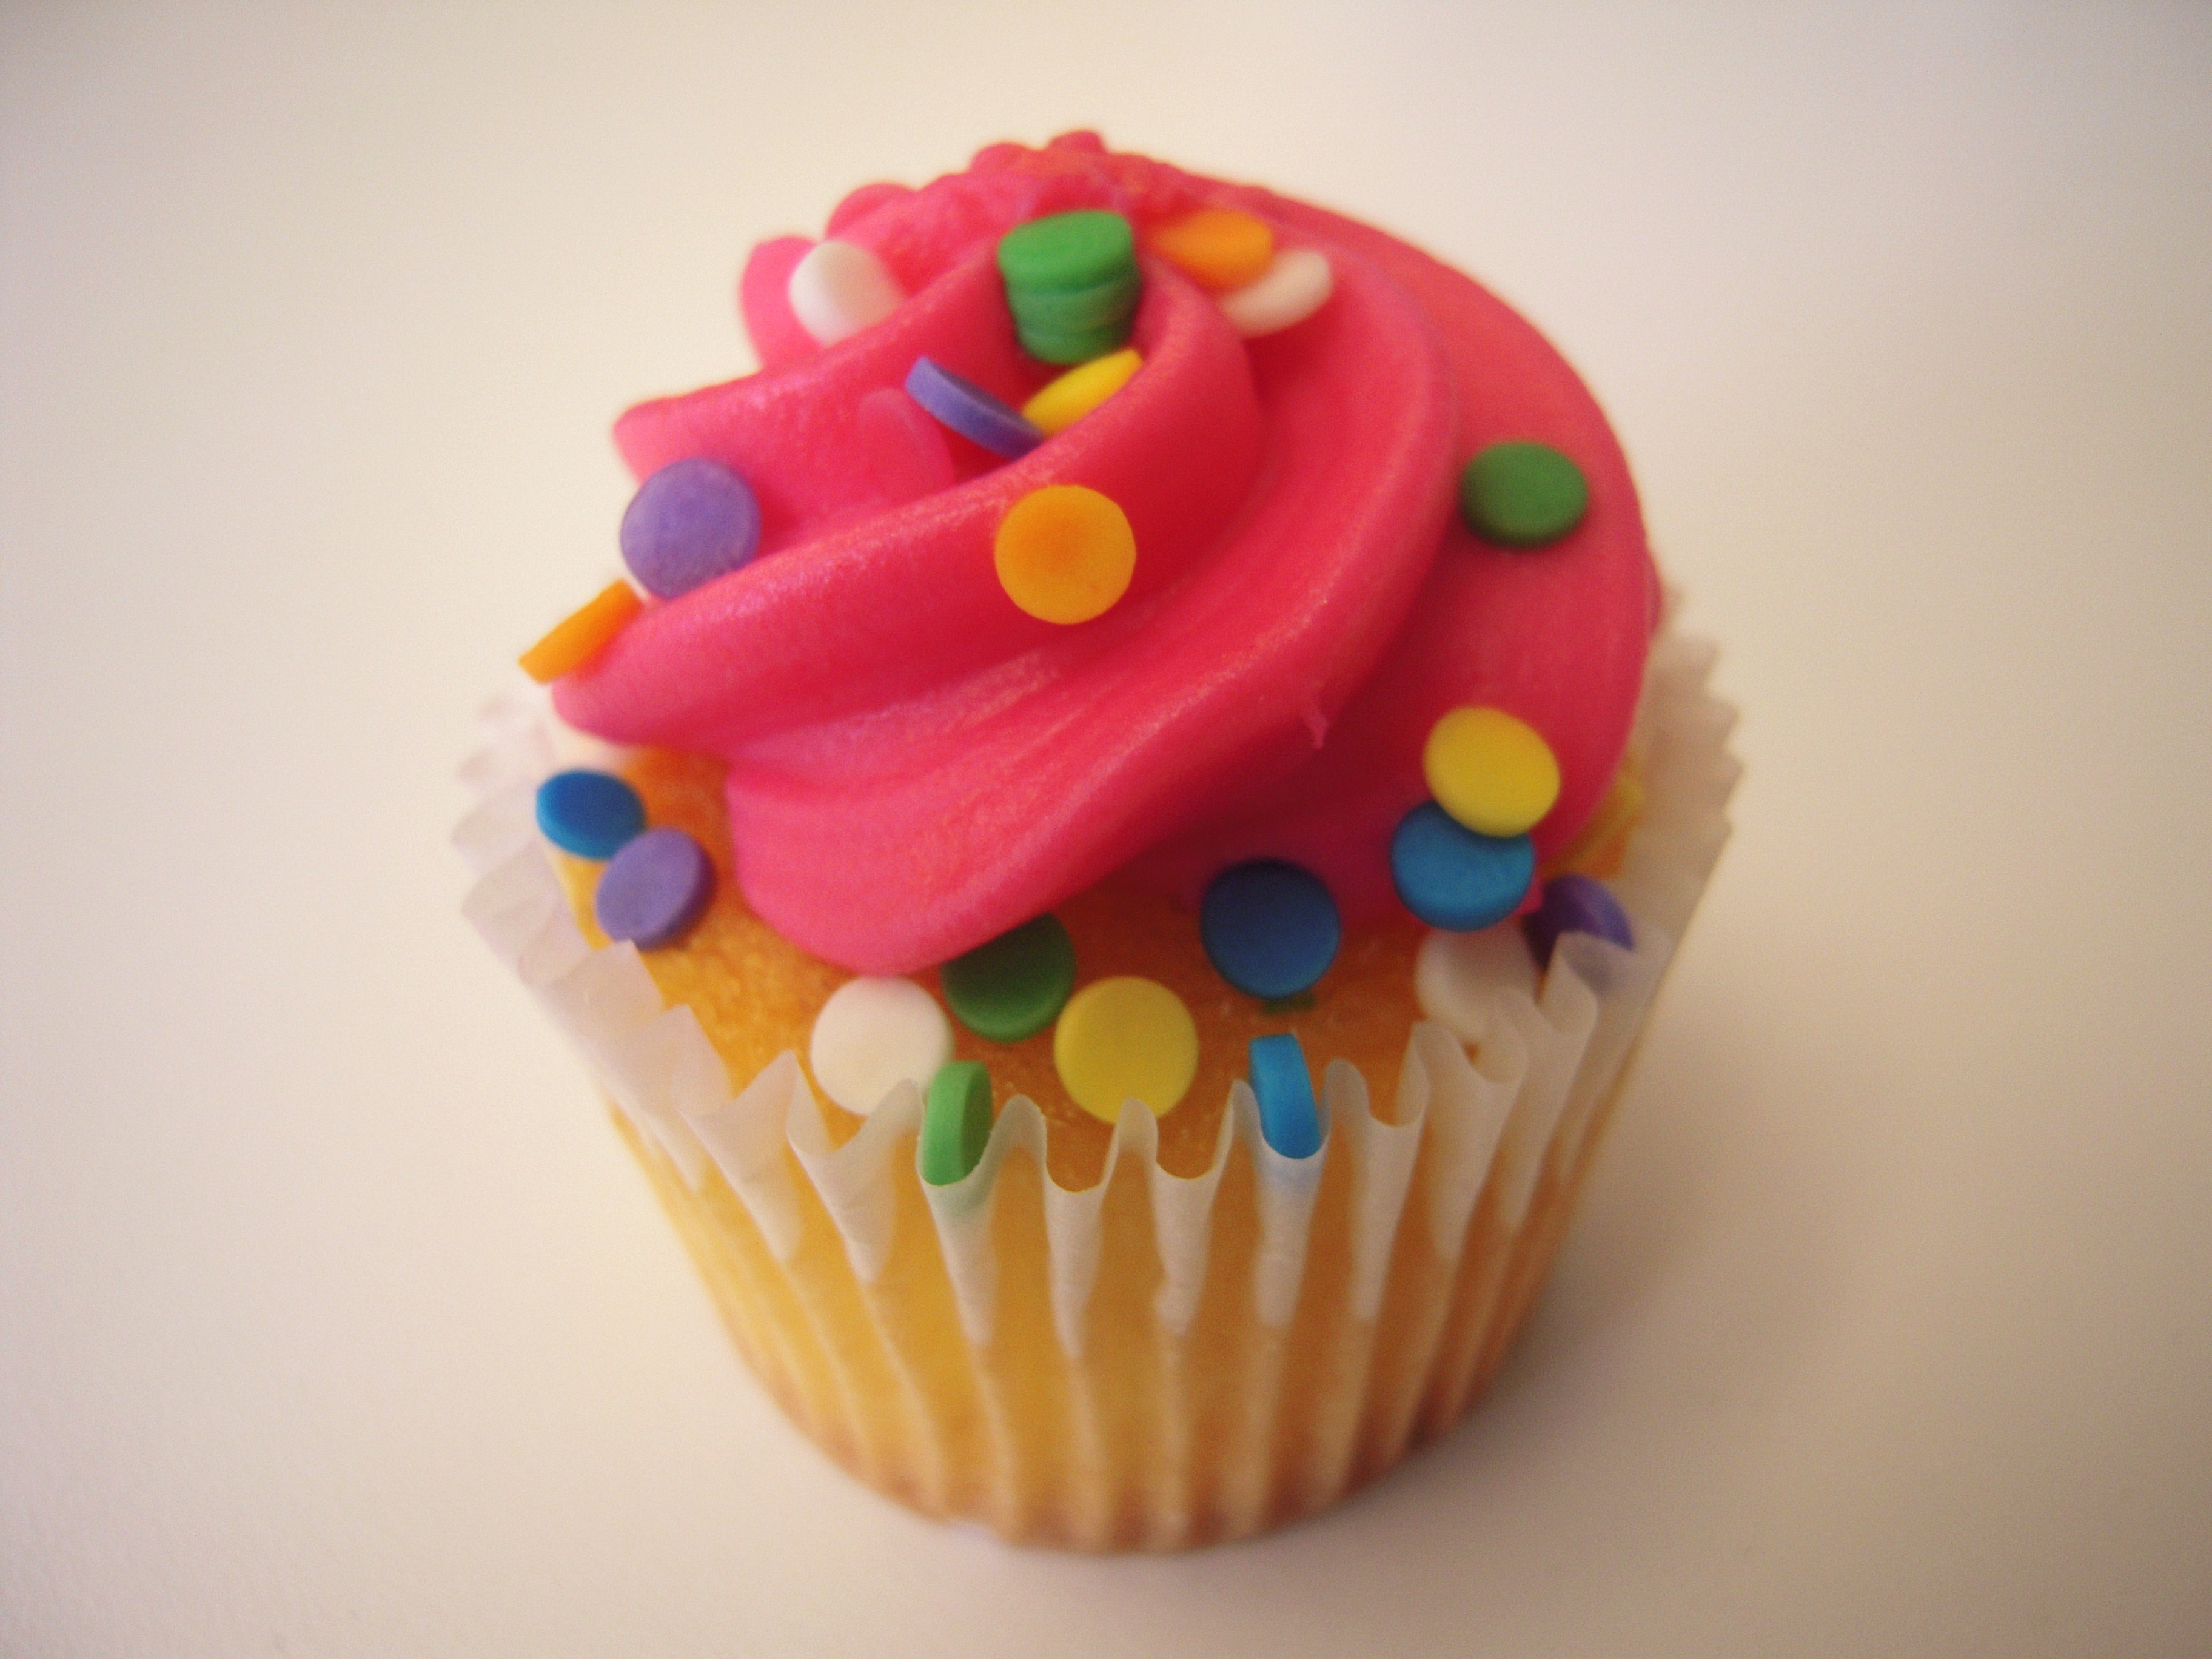 Cupcake Cakes In A Tier